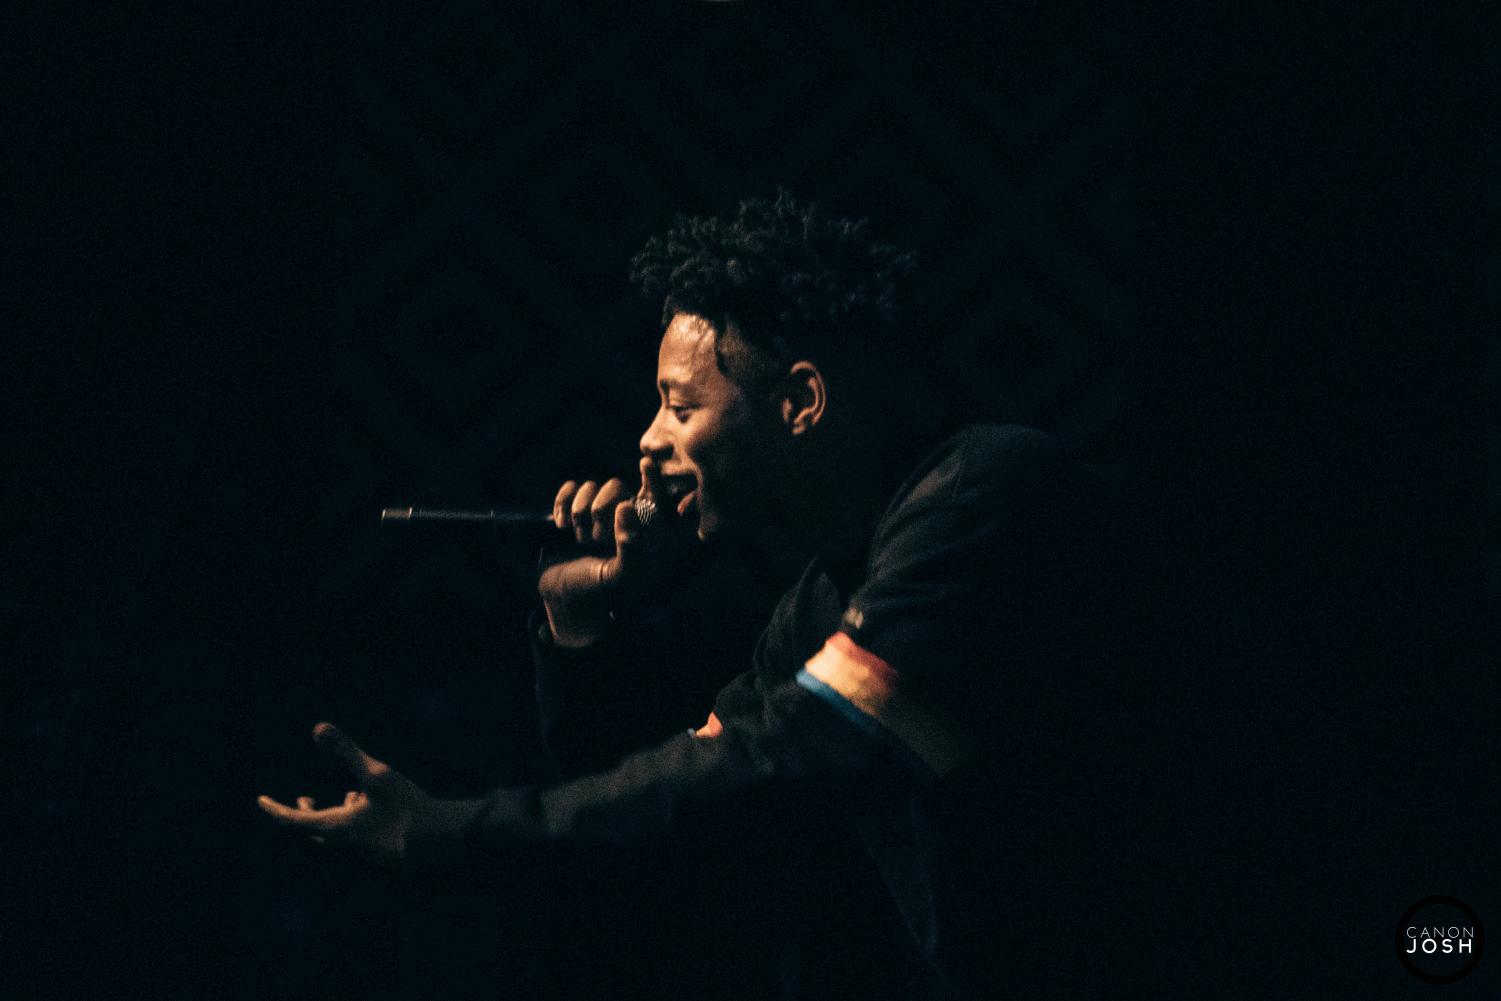 """Rapper Kaiydo captures the essence of summer and carefree fun with his latest singles, including his Soundcloud hit """"Fruit Punch."""" He will performing April 25 at the Bottom Lounge, 1375 W. Lake St."""